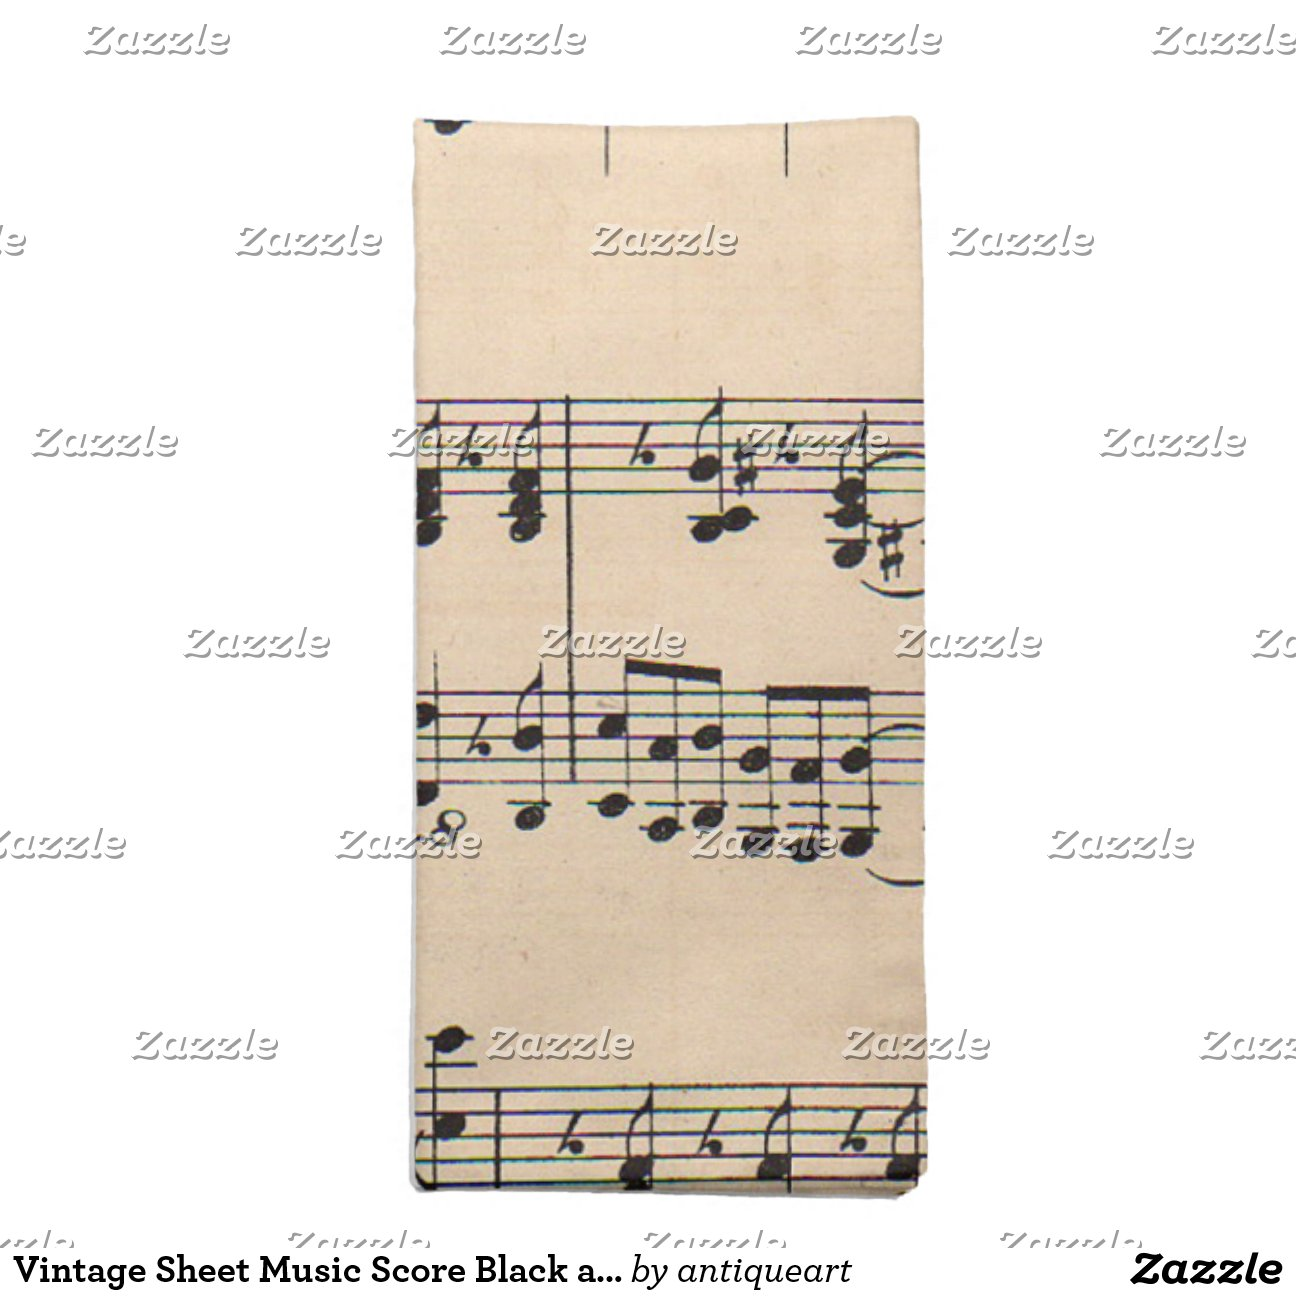 24 r score how to draw relationship diagram vintage sheet music black and white notes napkin